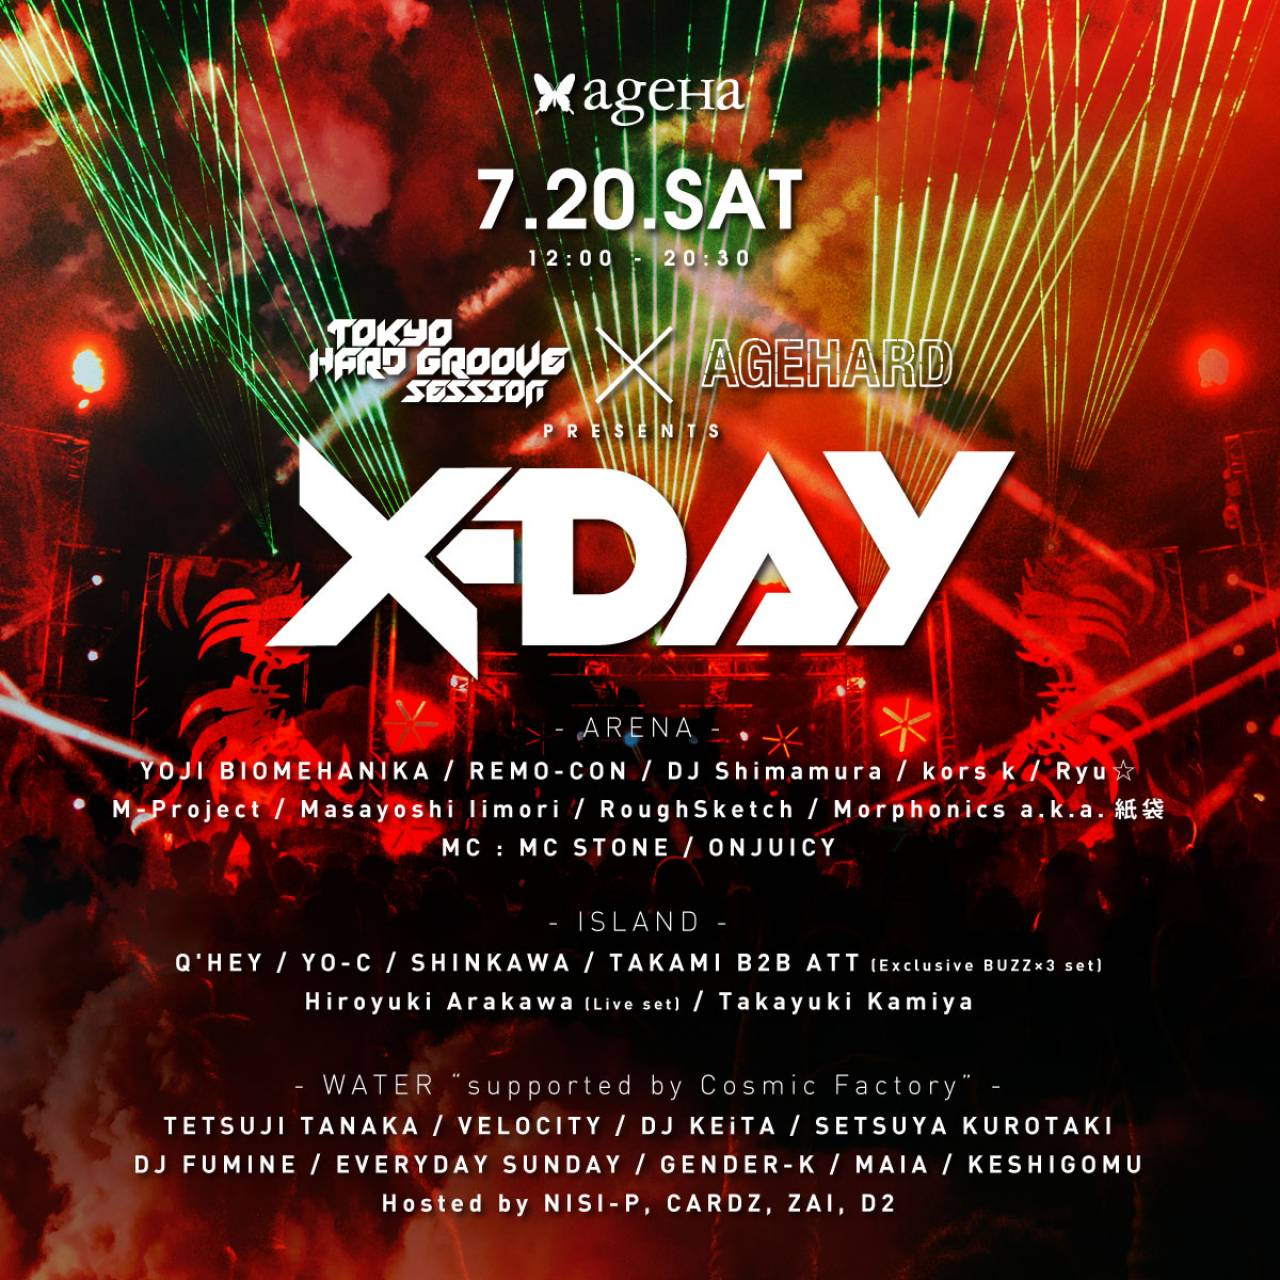 """X-DAY"" presented by TOKYO HARD GROOVE SESSION x AGEHARD"